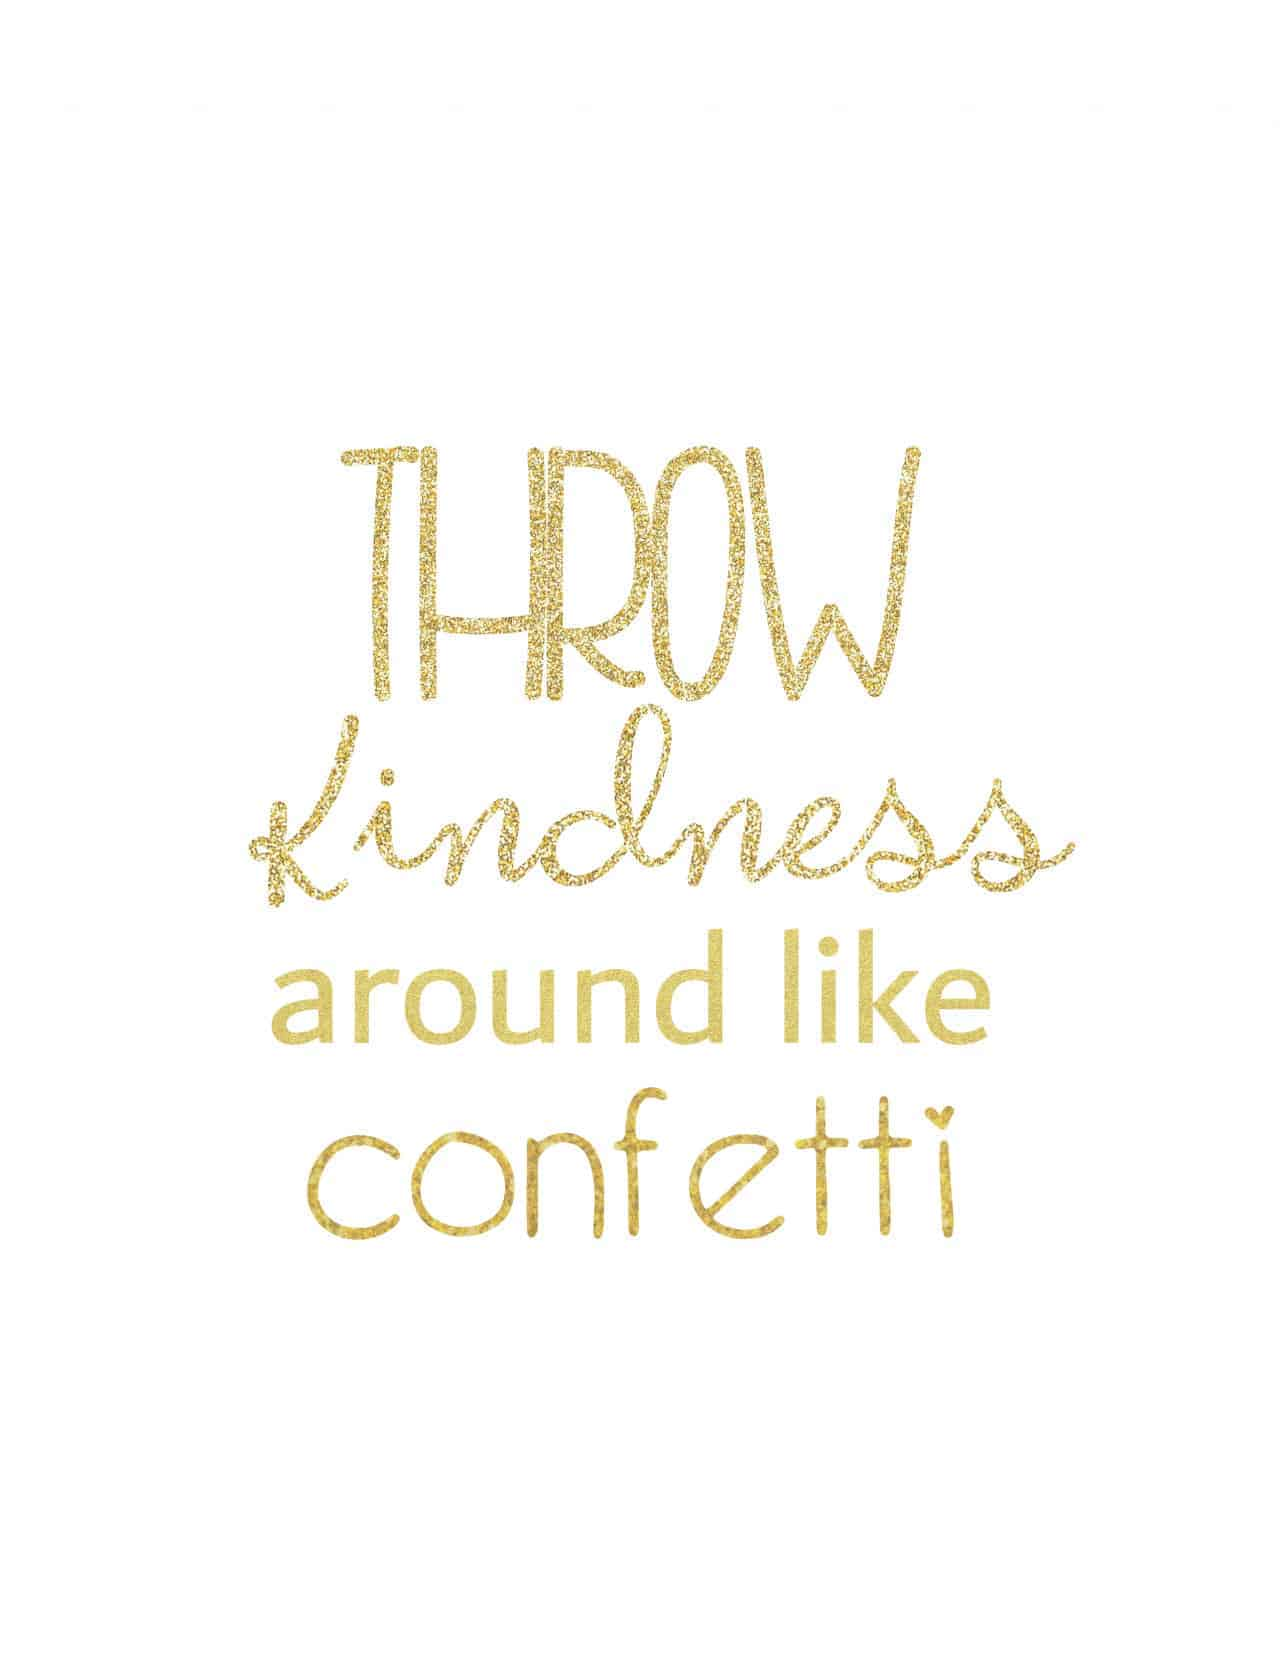 throw kindness around like confetti free printable with gold glitter lettering on plain white background